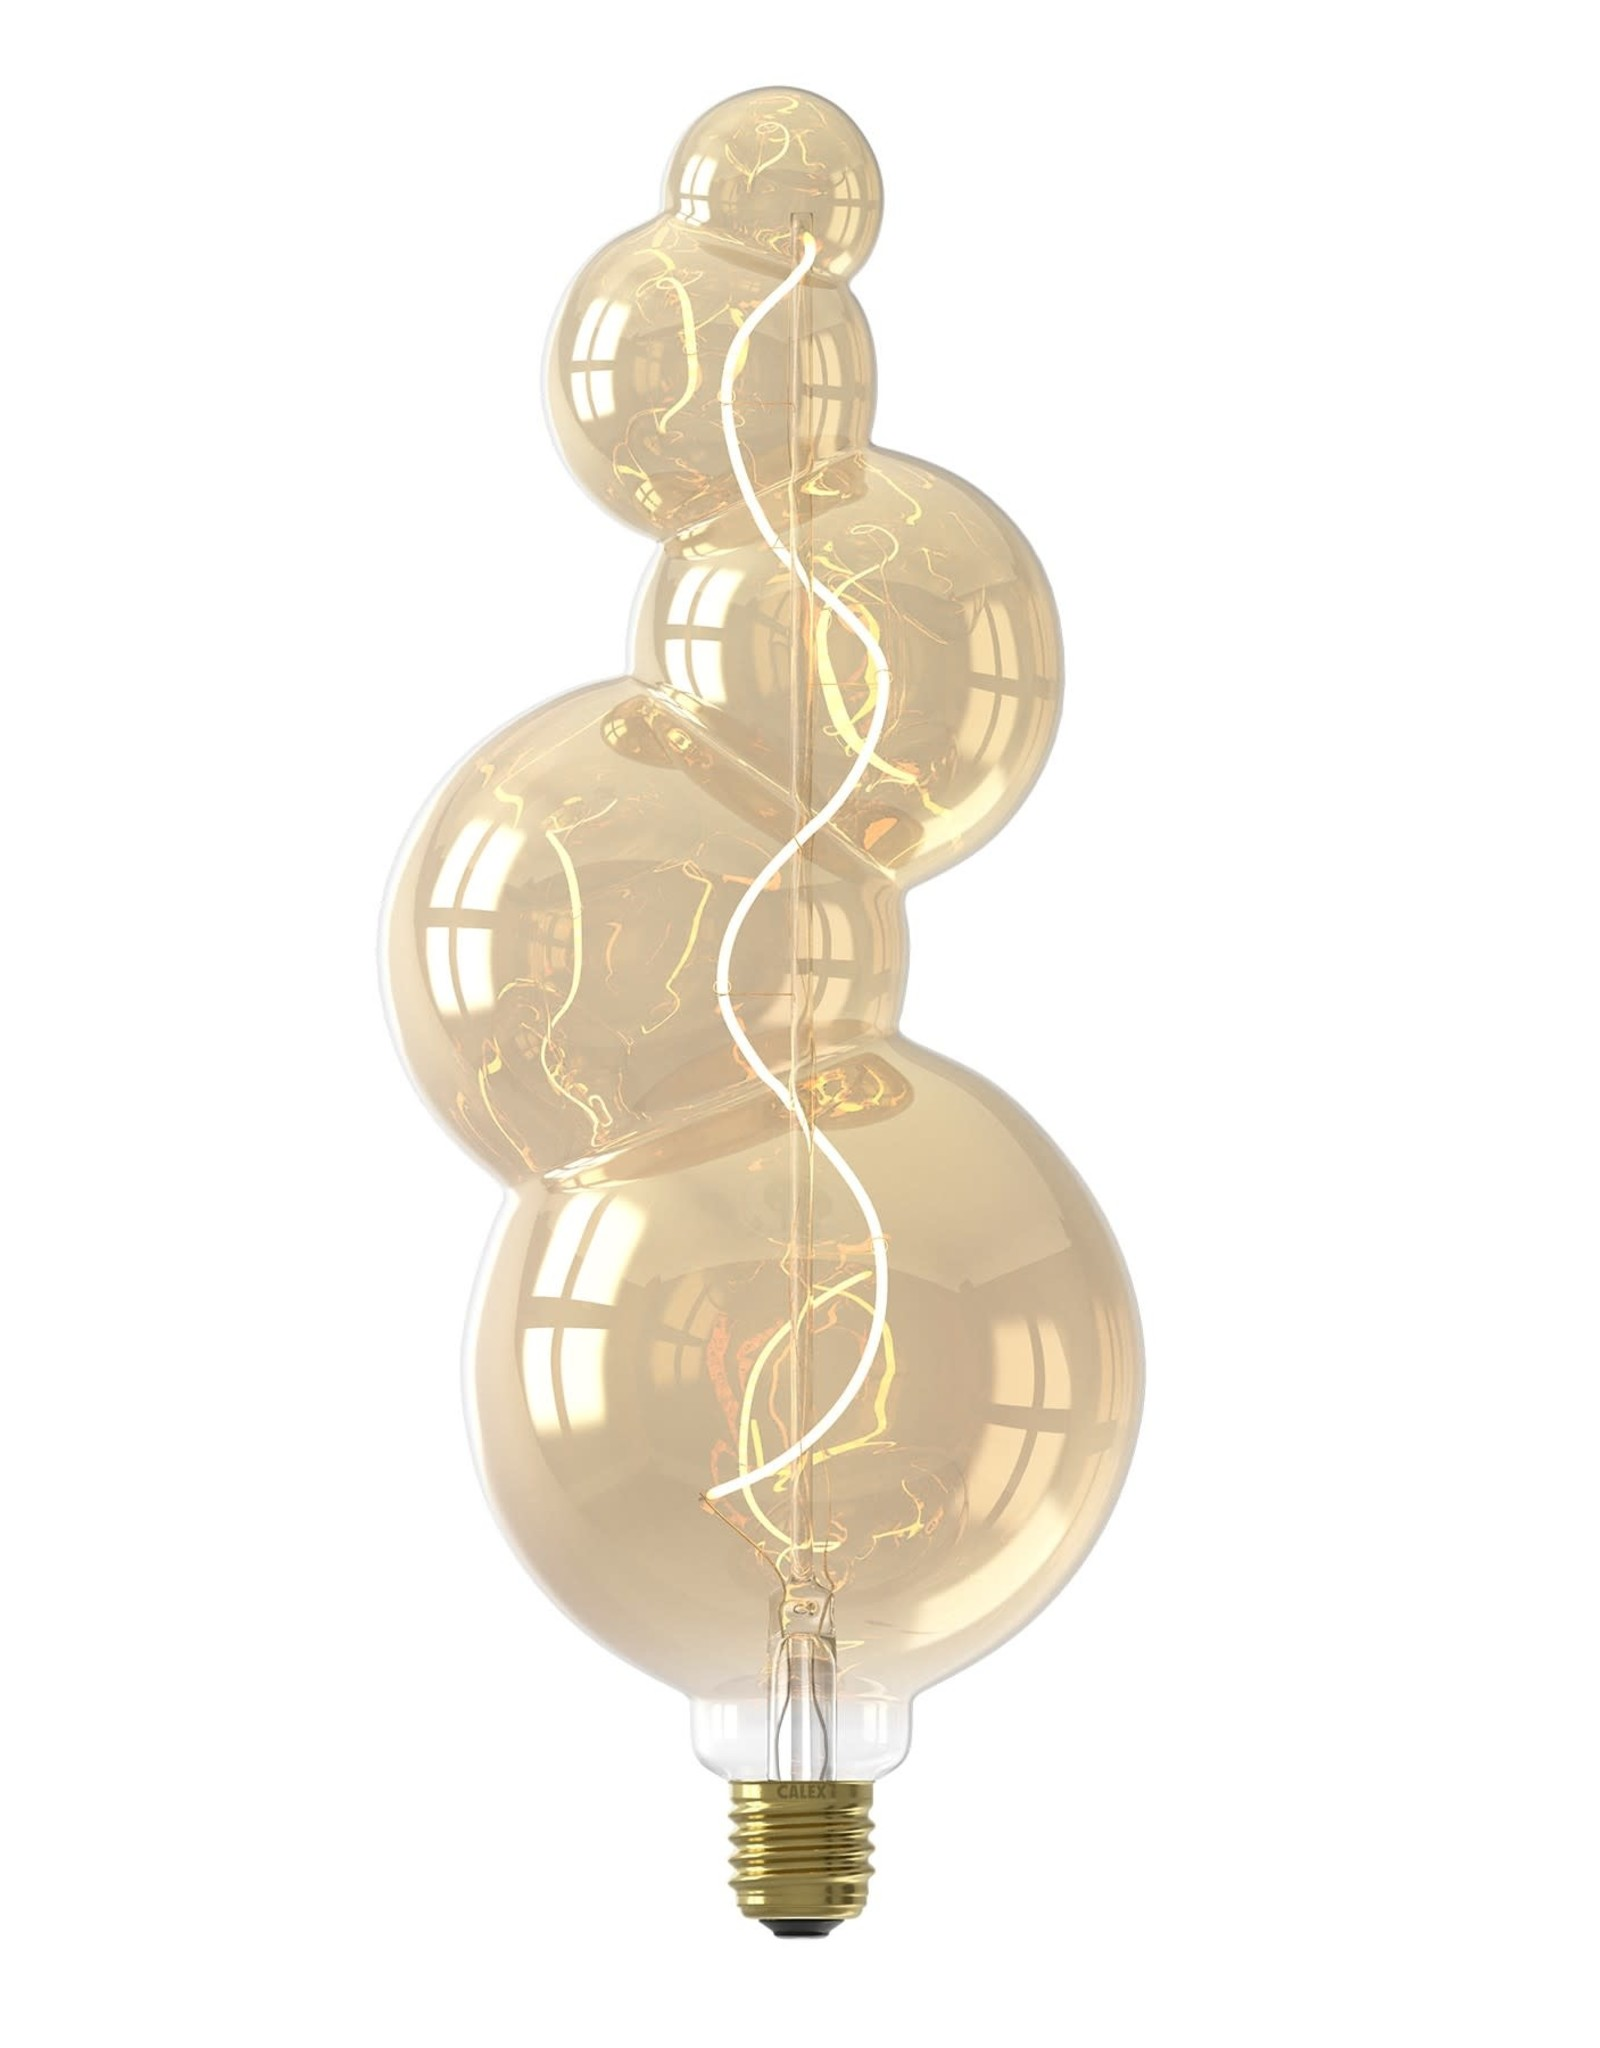 Calex Alicante LED Lamp 220-240V 4W 130lm E27, Gold 2100K dimmable, energy label B